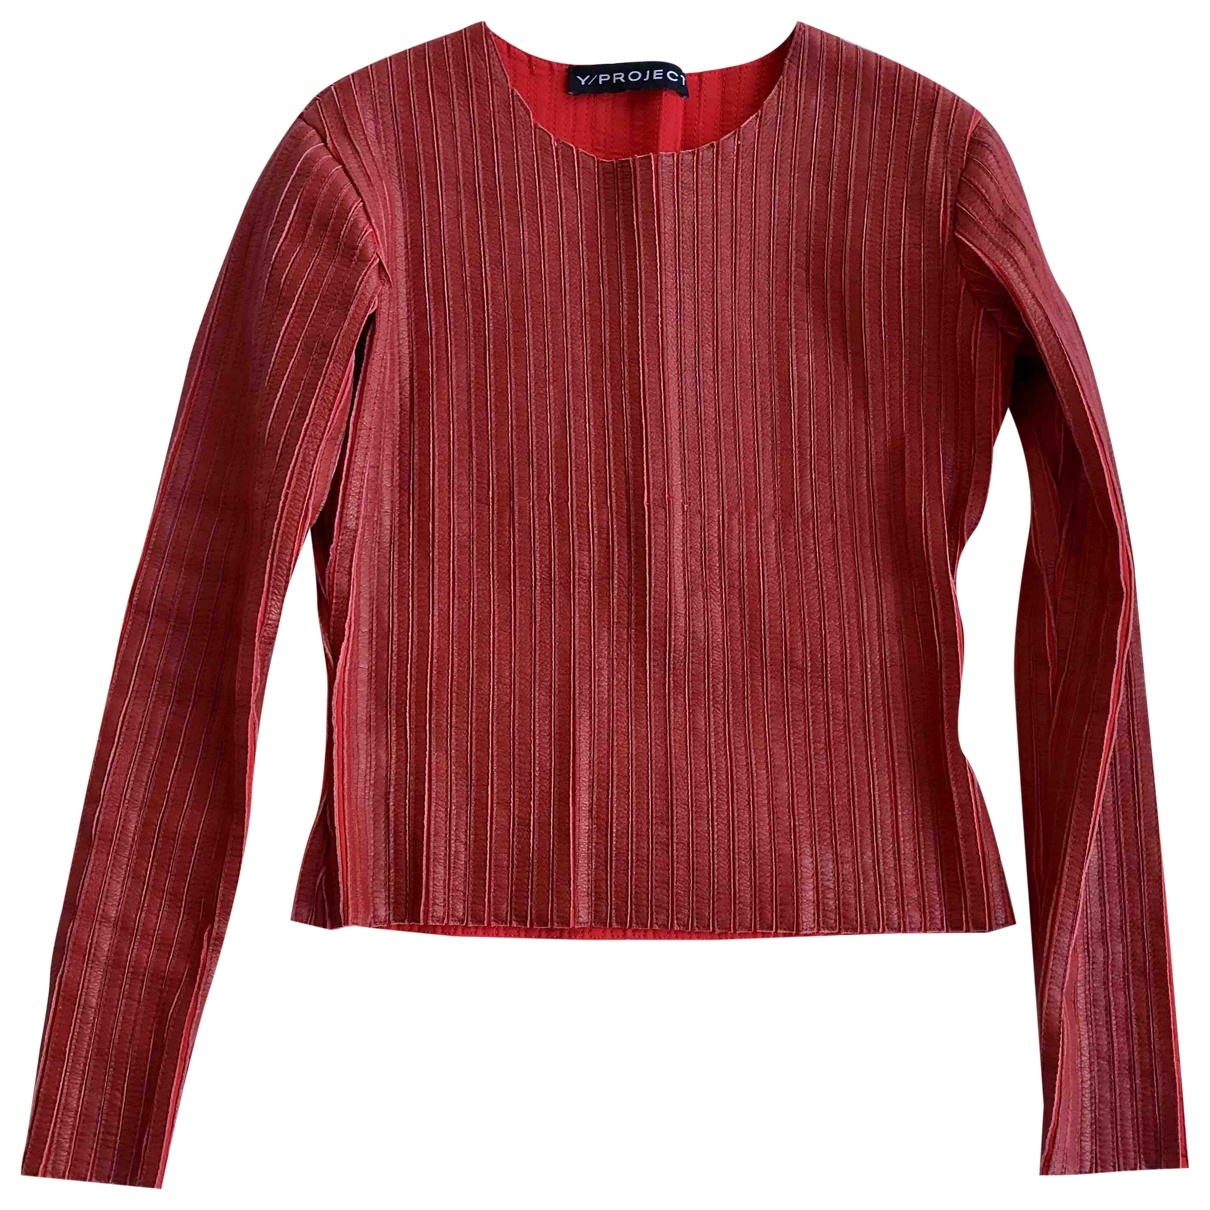 Y/project \N Red Leather  top for Women S International